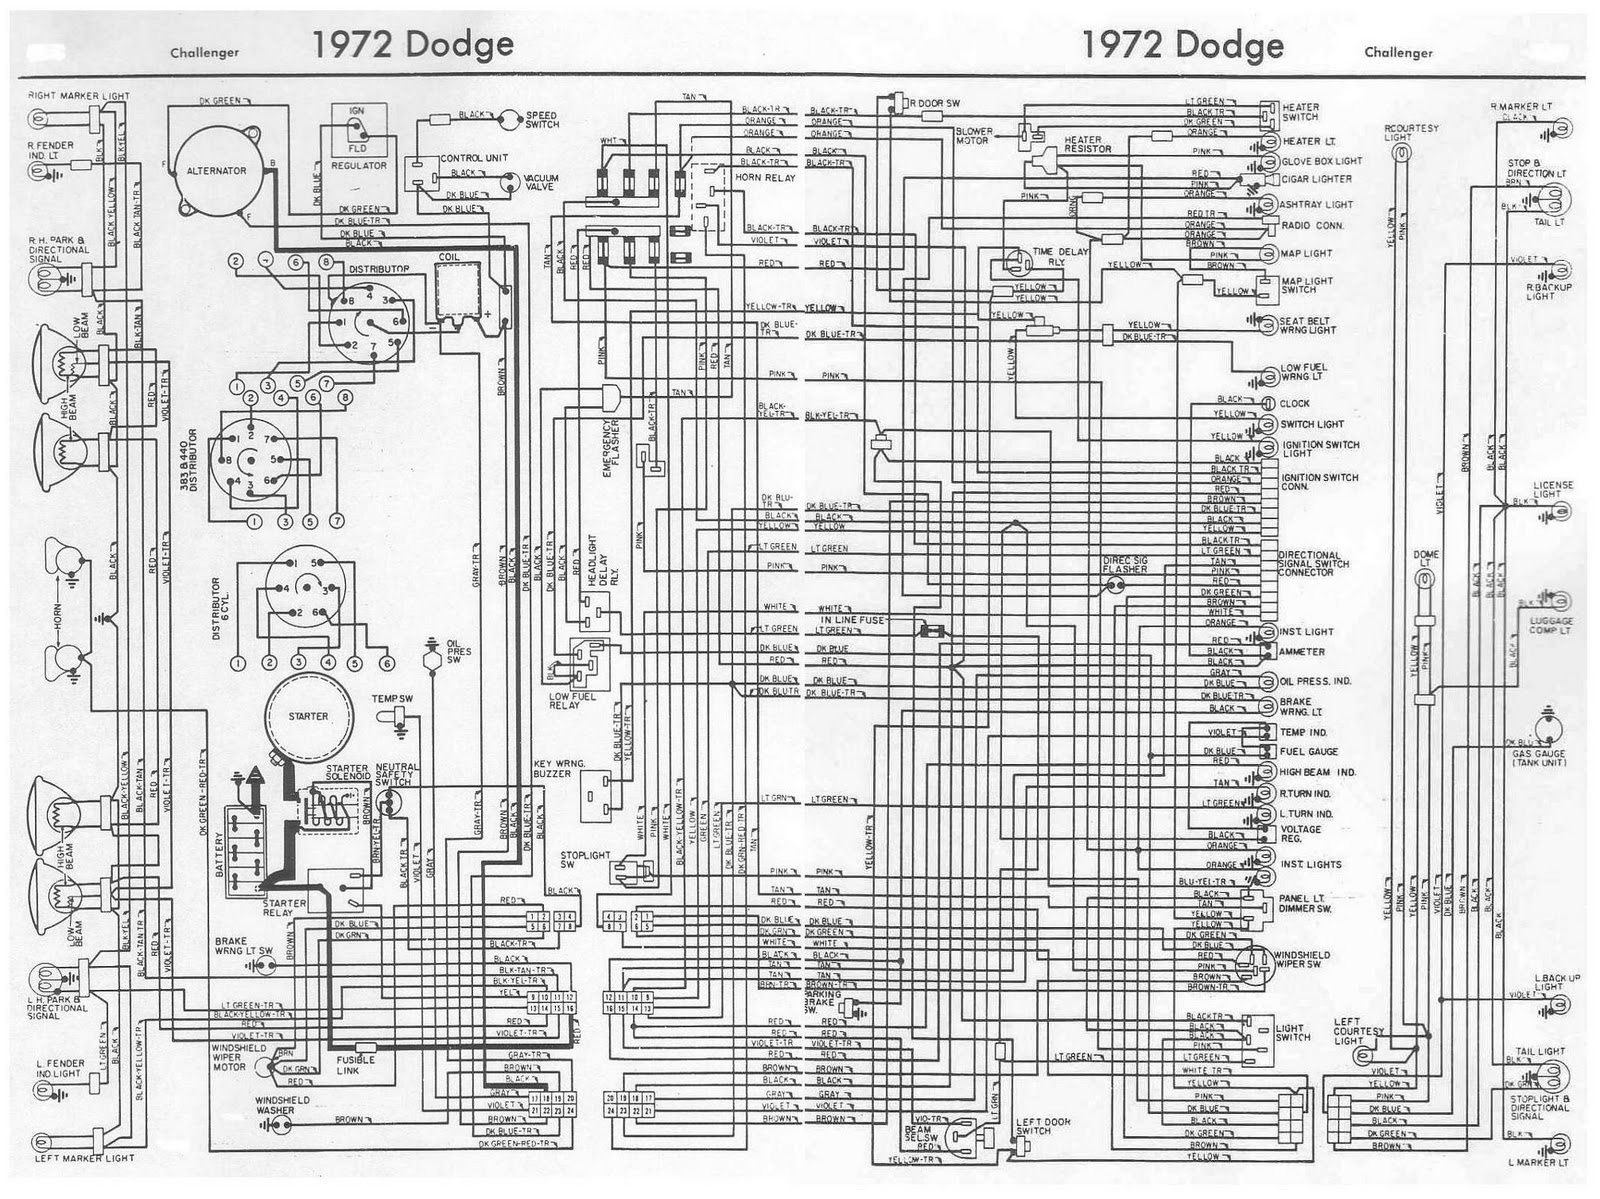 1973 Dodge Charger Ignition Wiring Diagram 2008 Ford F150 Diagrams D100 1975